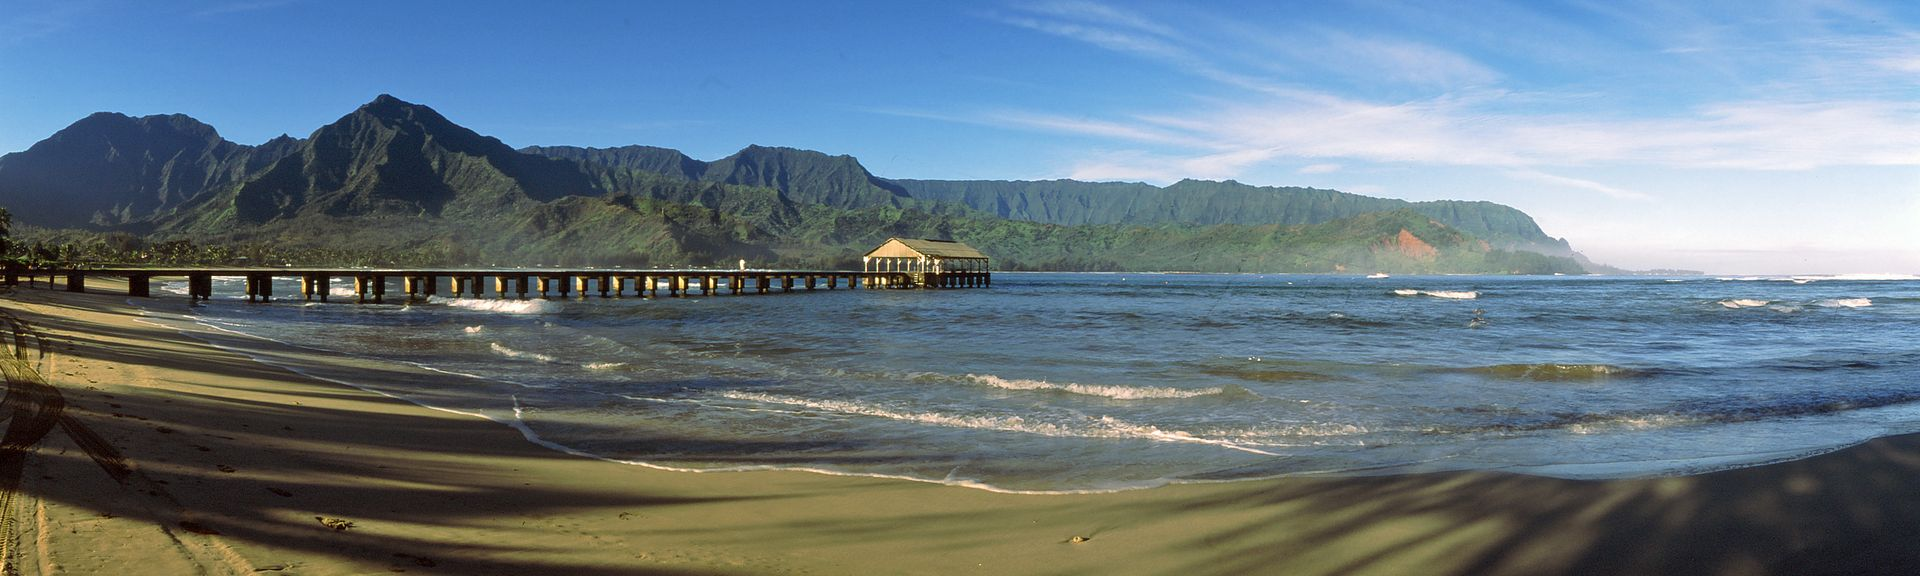 Lumahai Beach, Hanalei, Hawaii, United States of America